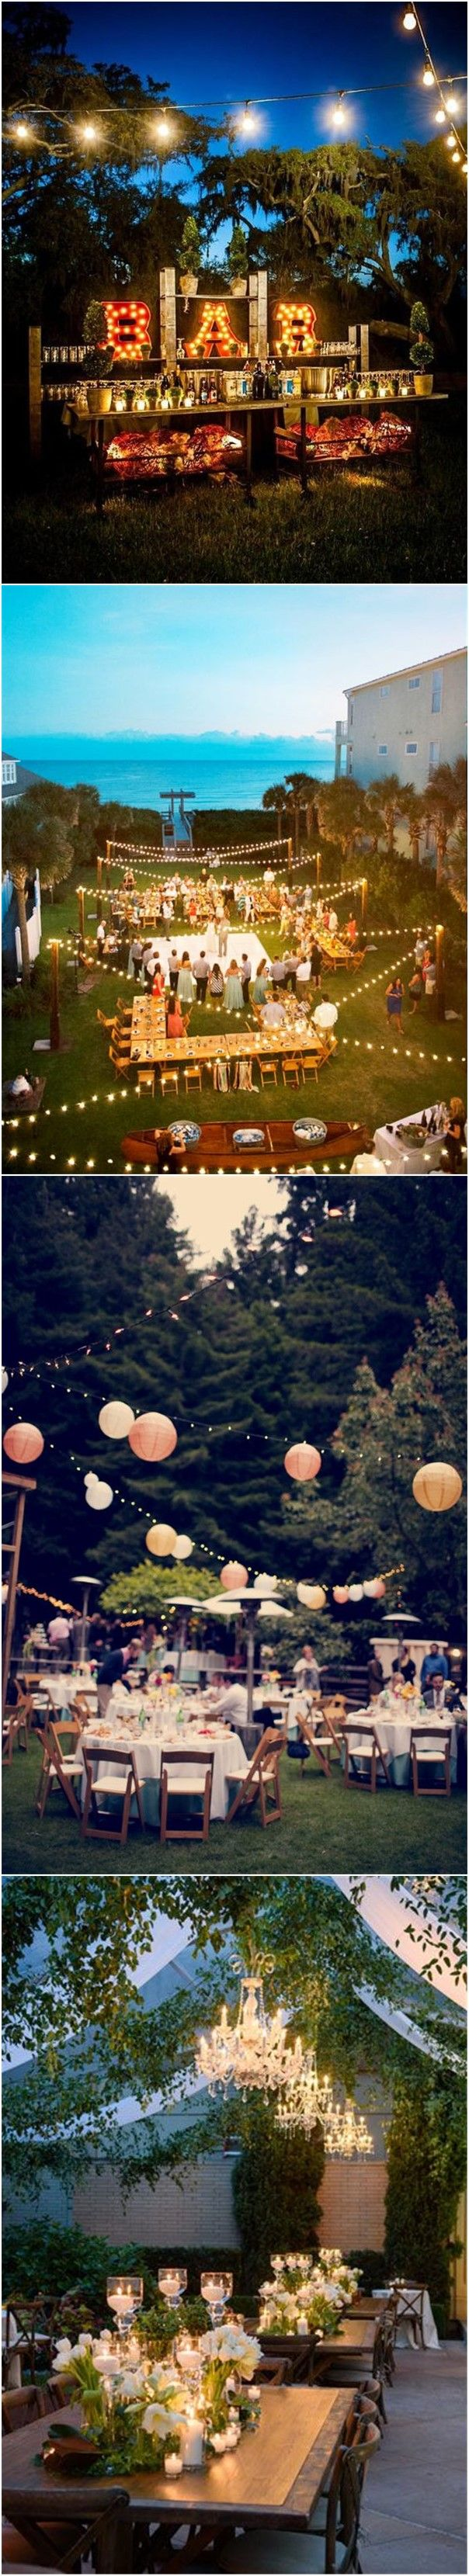 441 best country wedding ideas images on Pinterest